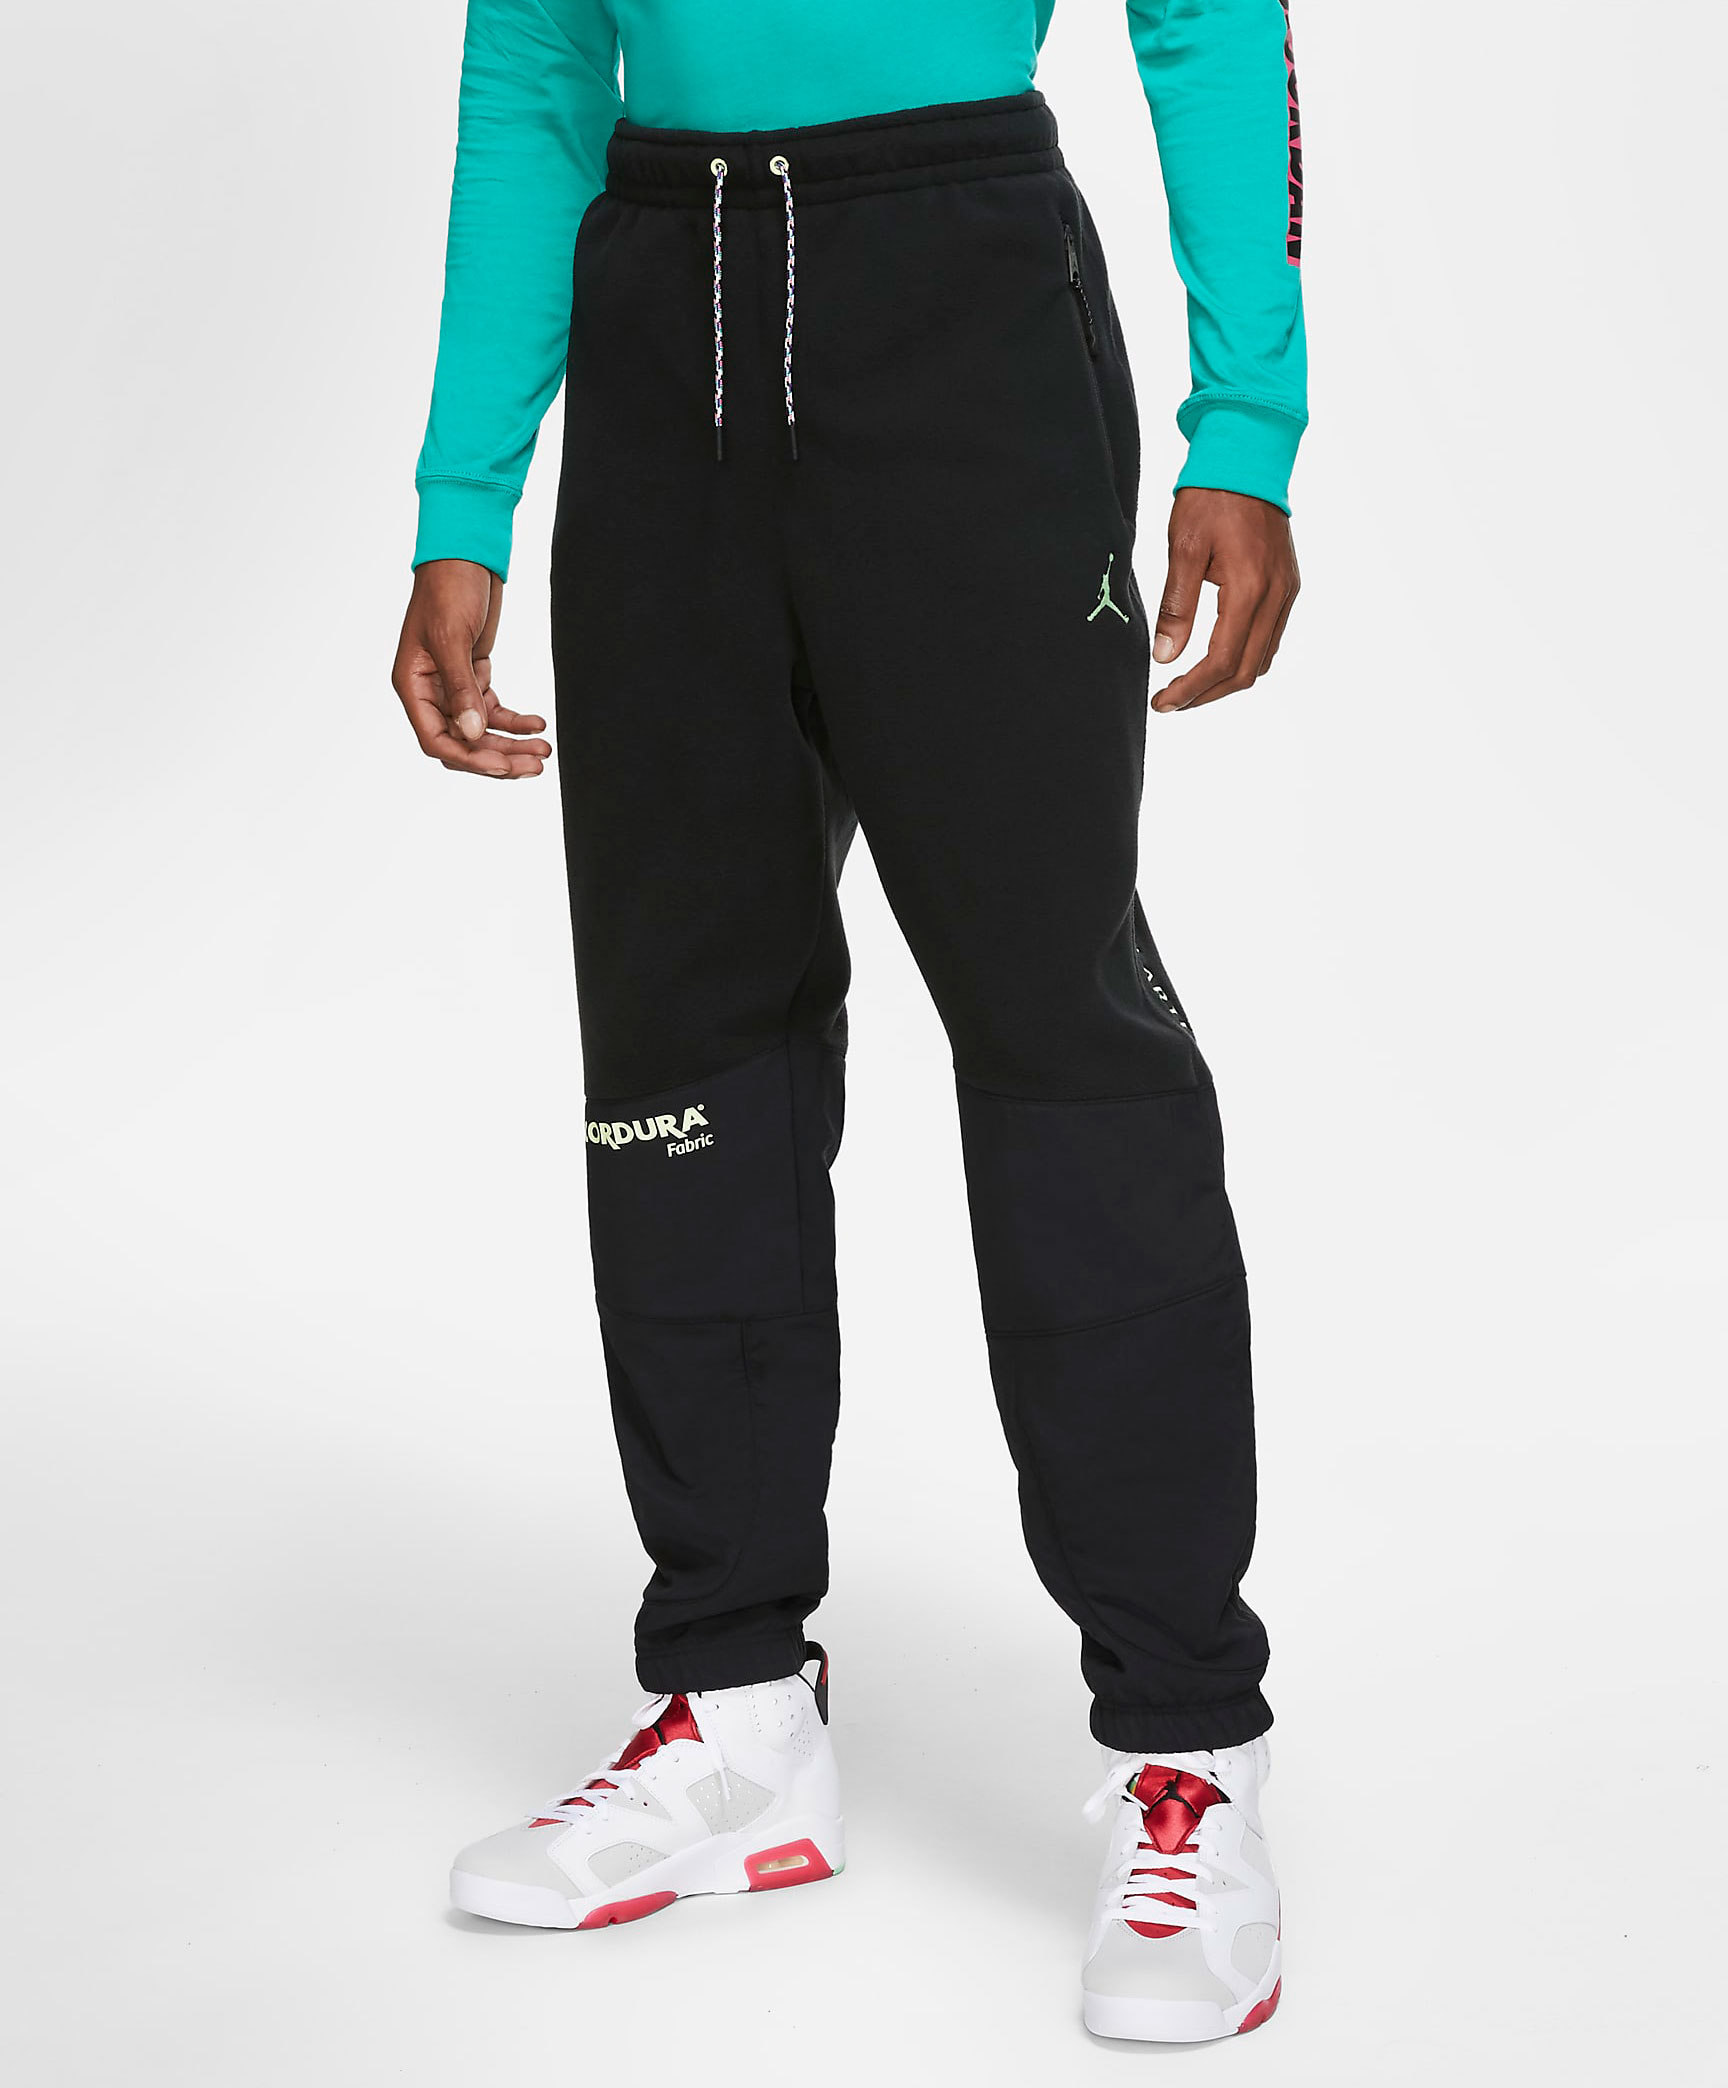 jordan-winter-utility-pants